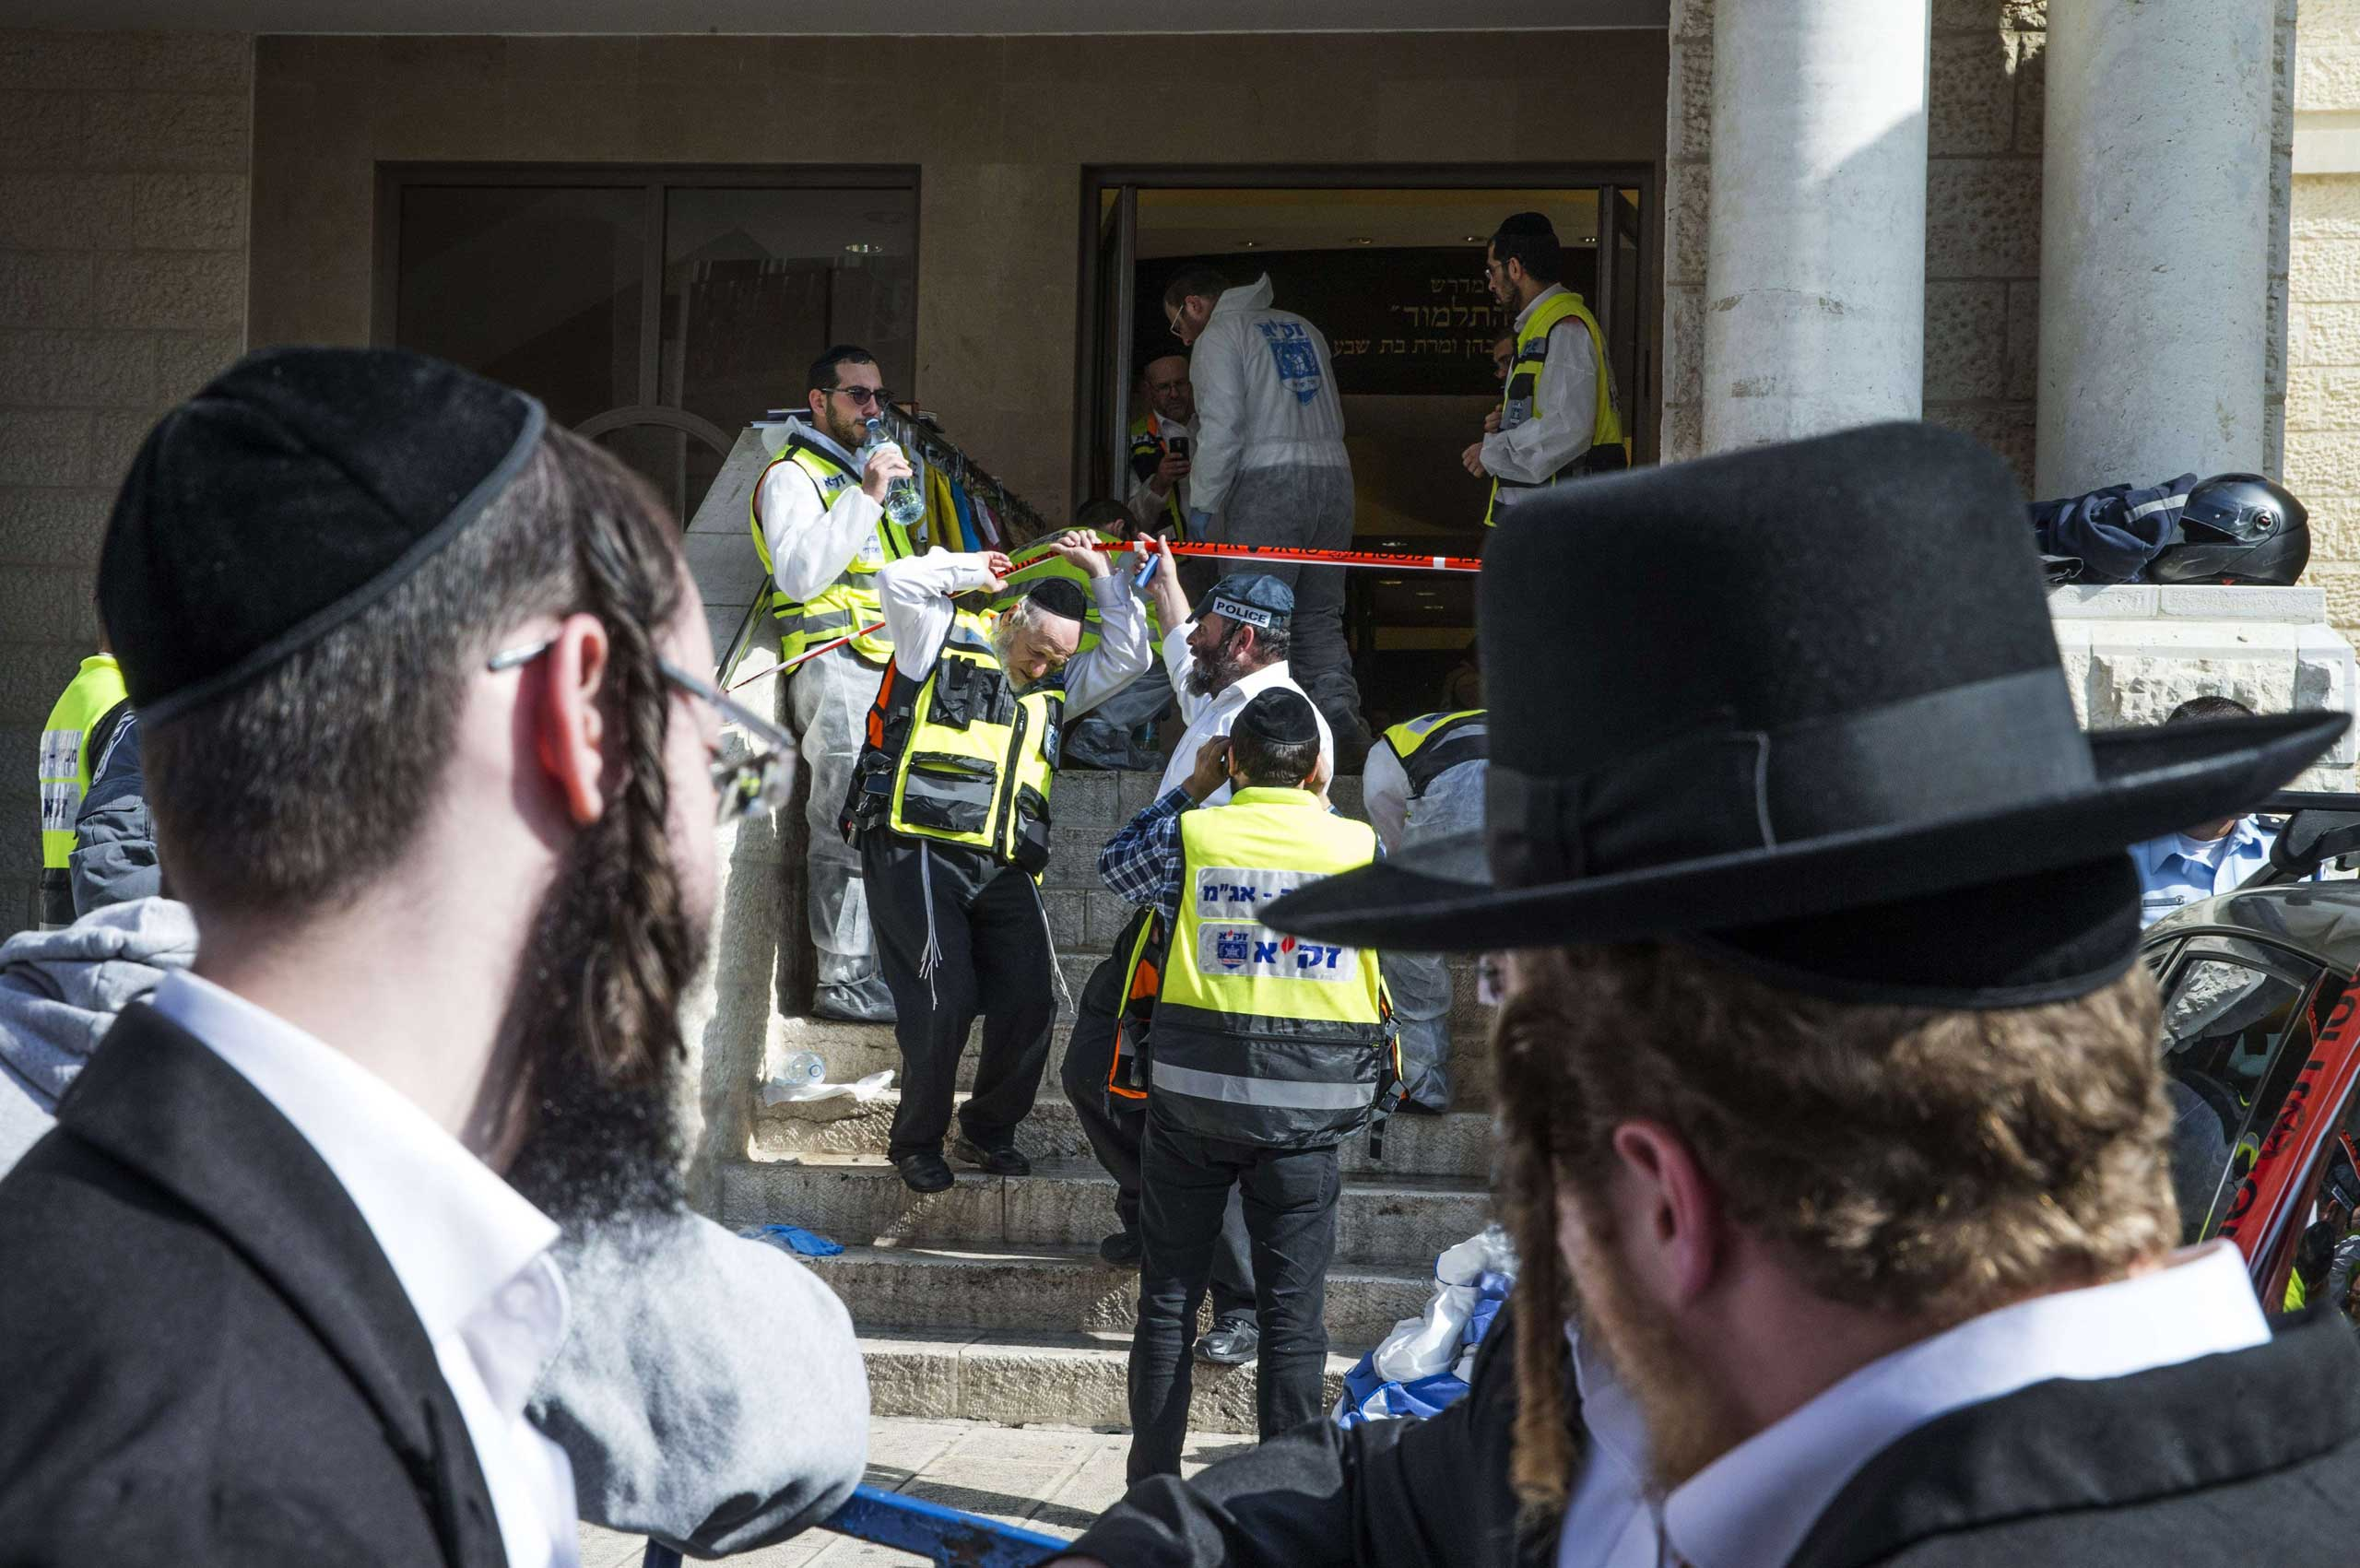 Ultra-orthodox Jewish men look on at the scene of an attack on Israeli worshippers at a synagogue in the ultra-Orthodox Har Nof neighborhood in Jerusalem on Nov. 18, 2014.